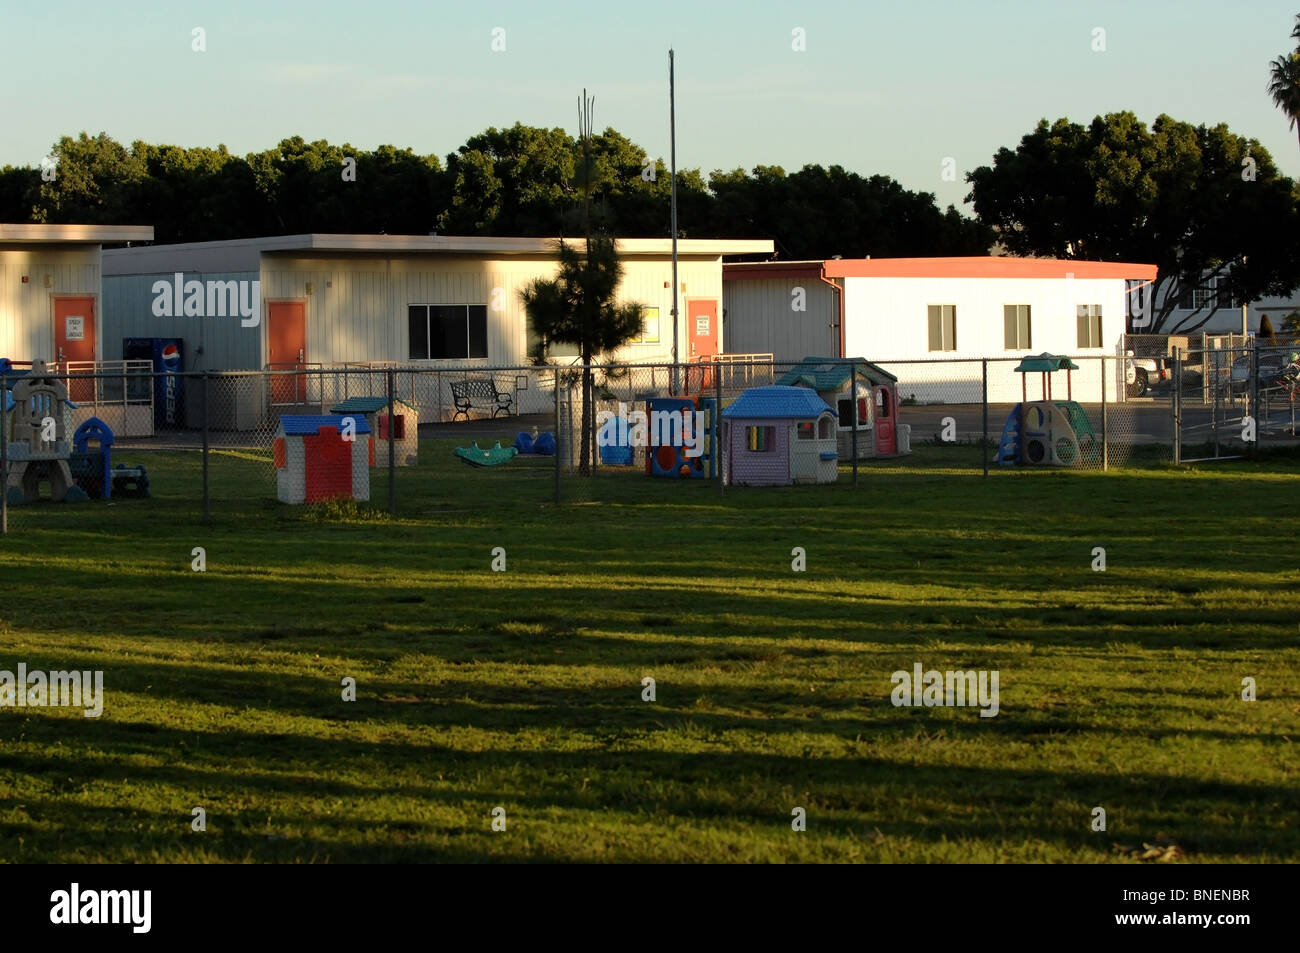 Daycare facility, empty of children, behind a short chain-link fence. Stock Photo